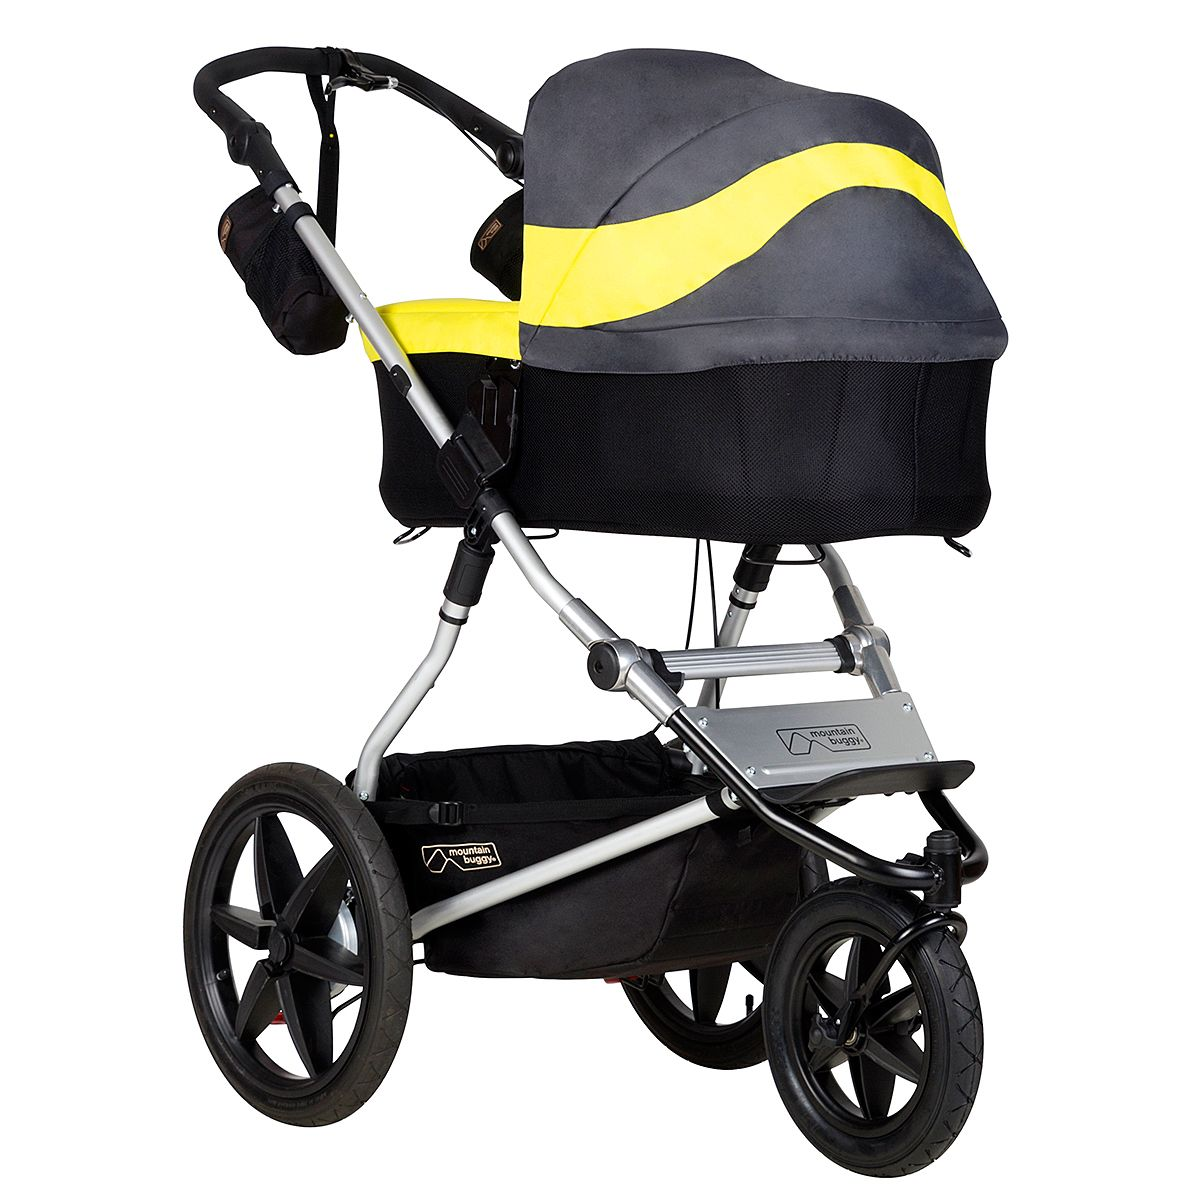 Carrycot Plus For Urban Jungle Terrain And One Mountain Buggy